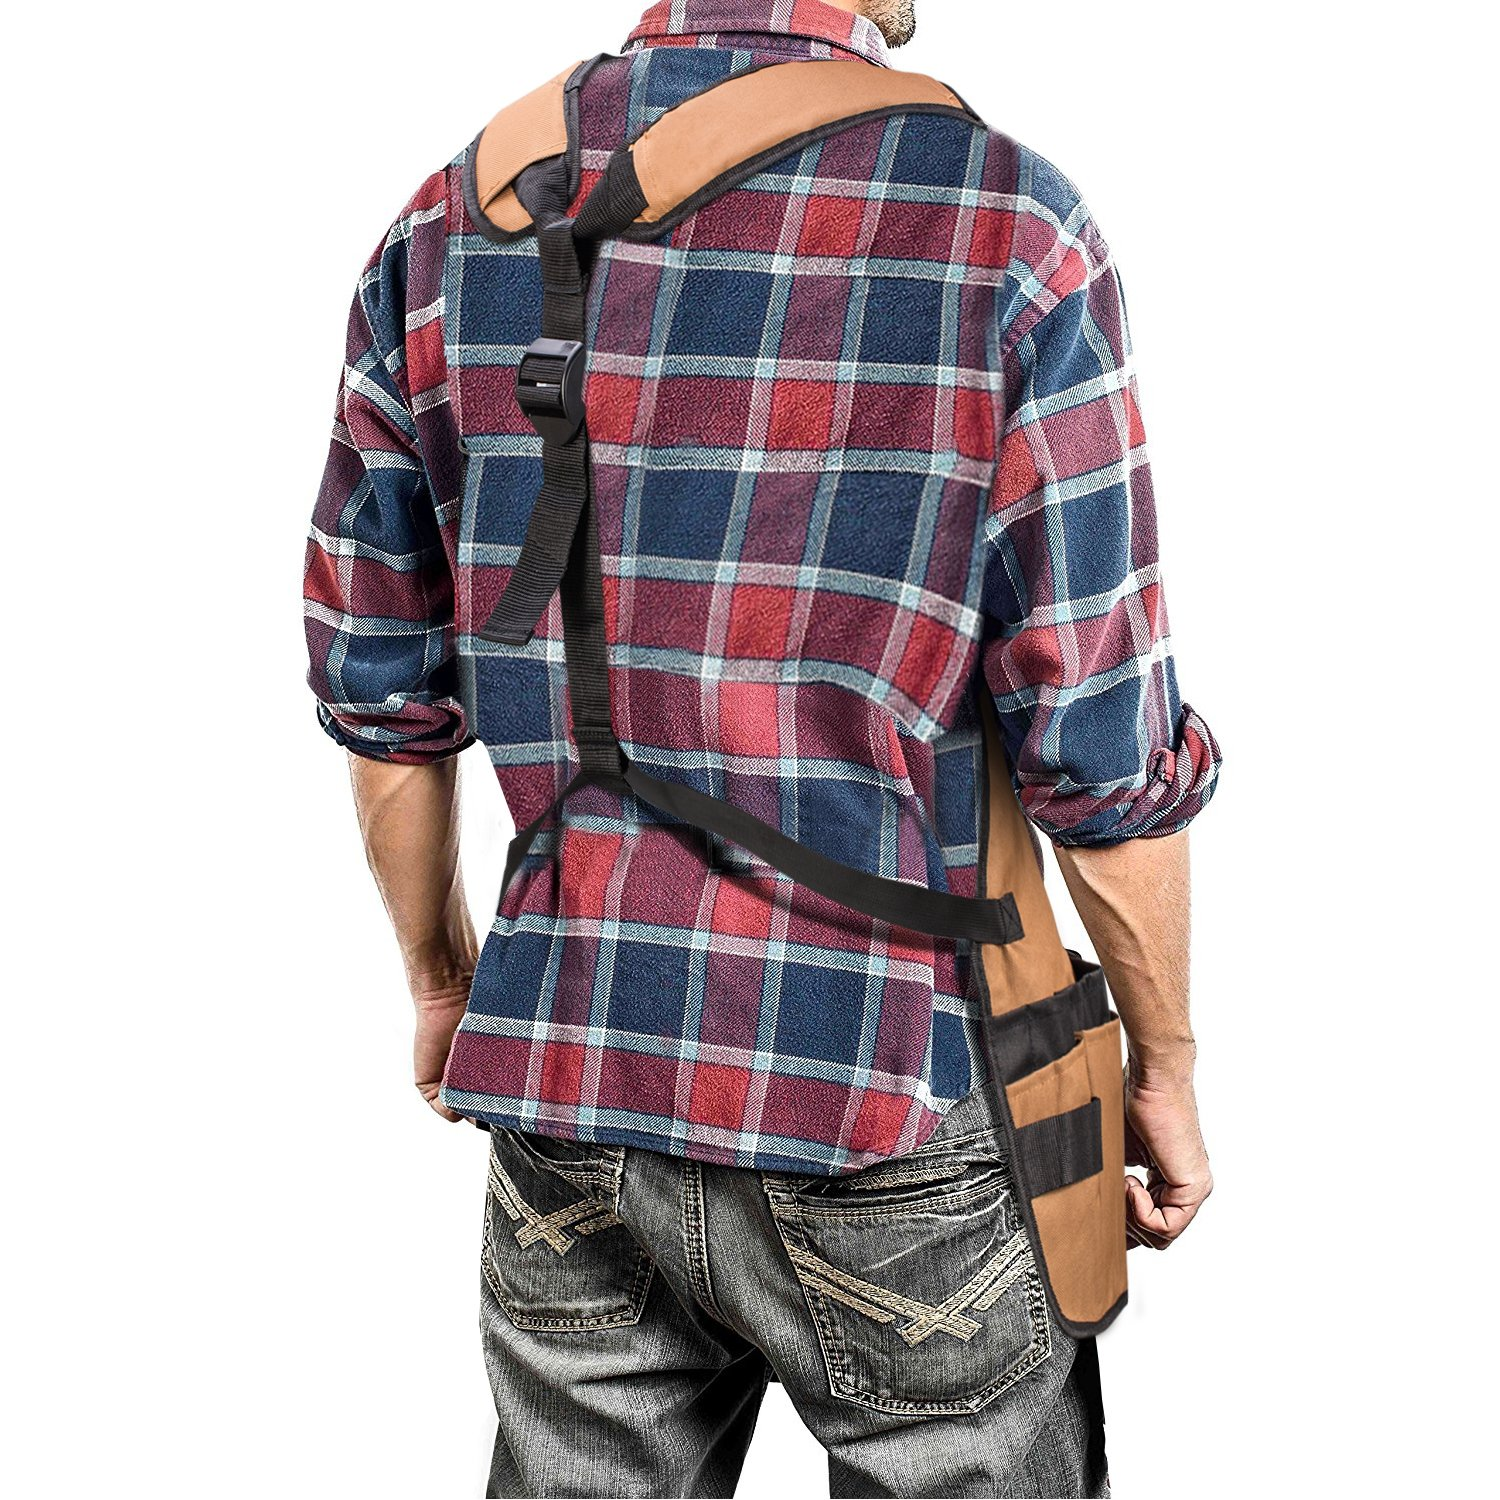 Work Apron - UHINOOS 16 Pockets Professional Heavy Duty Waterproof Tool Apron With Adjustable Cross-back Strap Fits Men & Women (brown) by UHINOOS (Image #2)